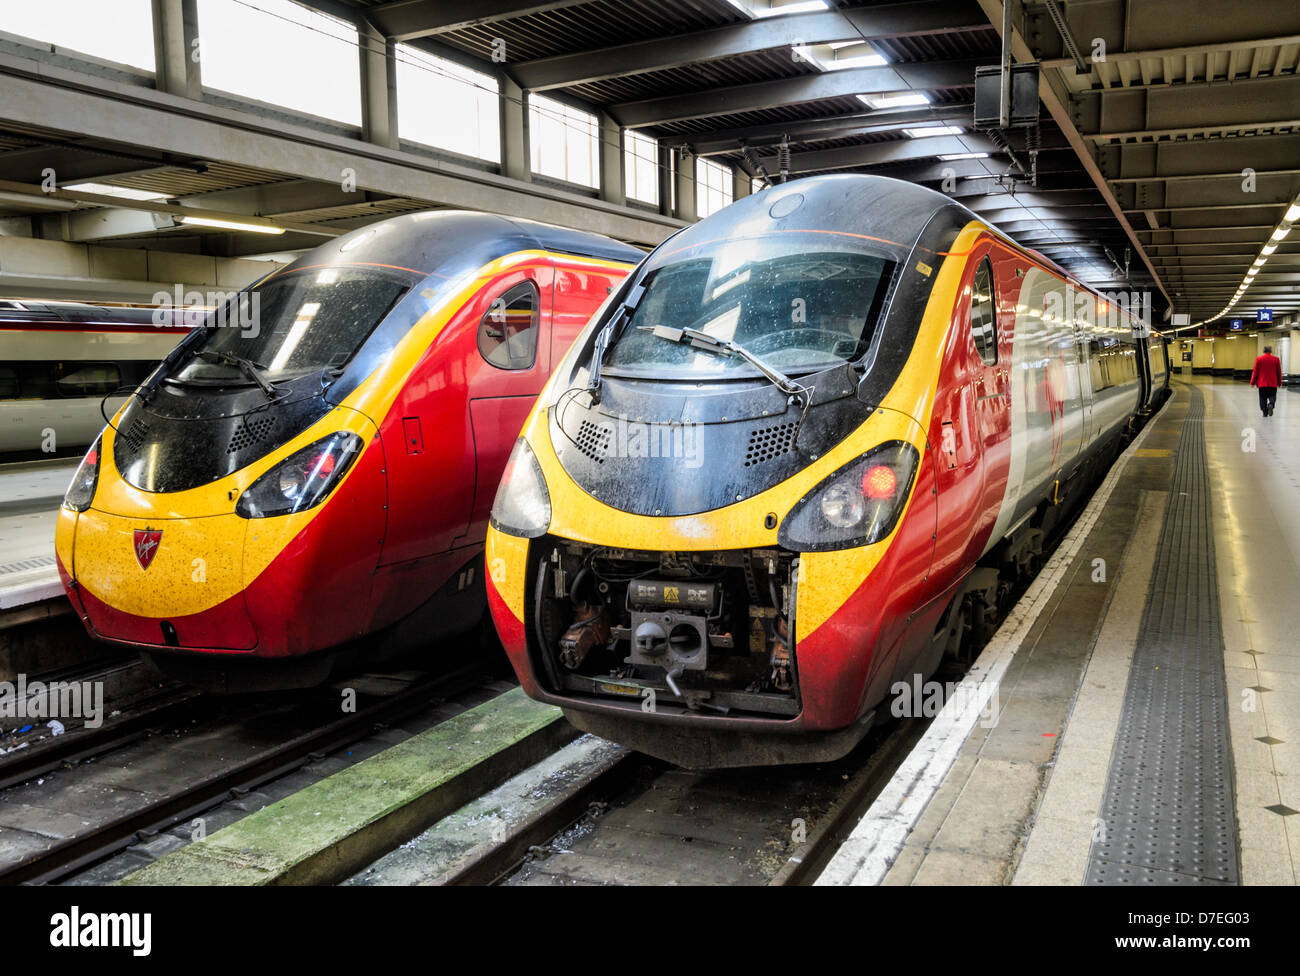 Pendolino trains operated by Virgin Trains wait at Euston Station, London, England. One appears to be undergoing - Stock Image